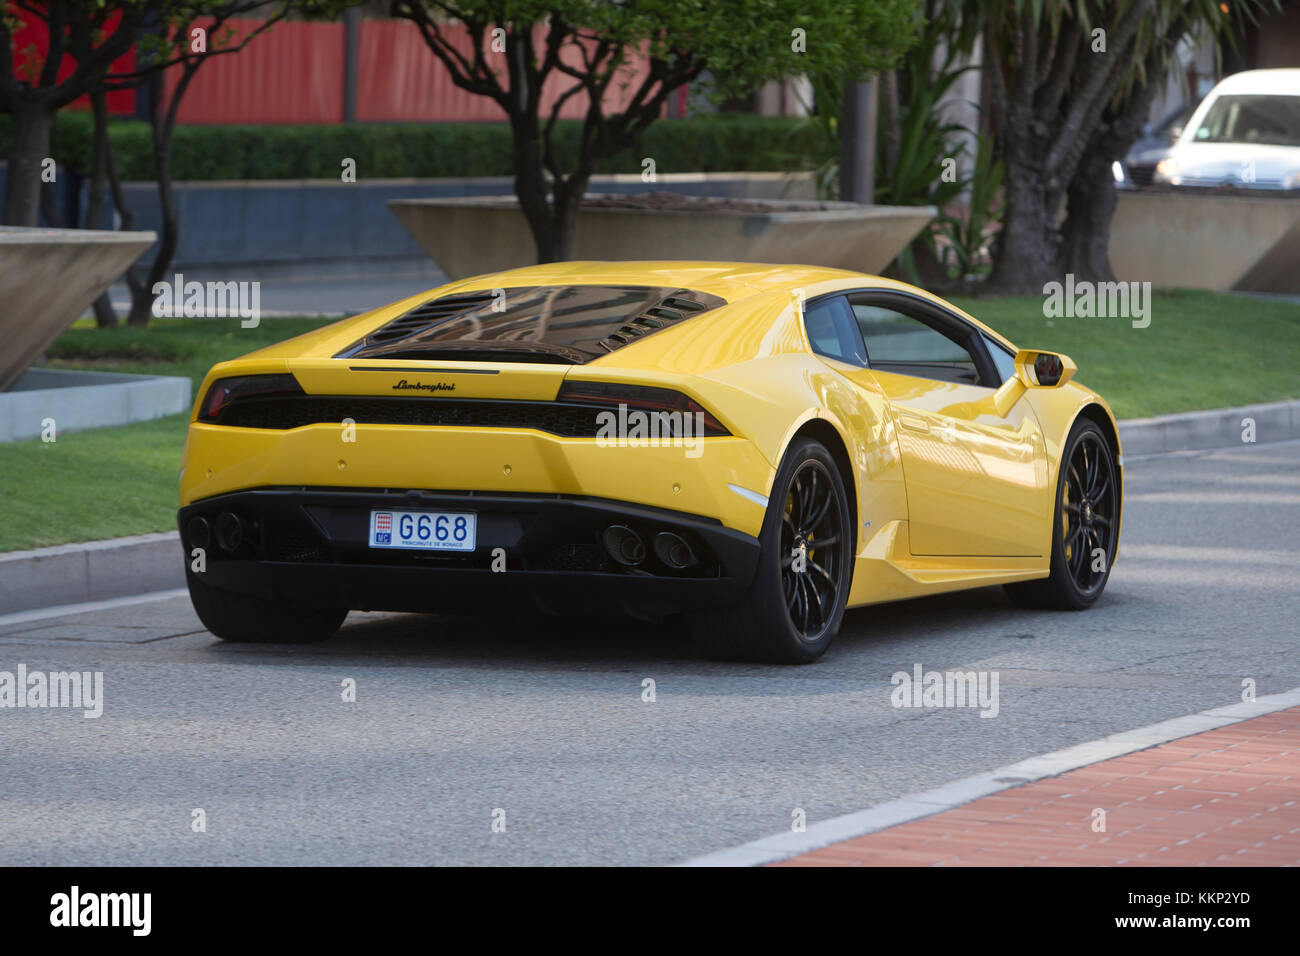 lamborghini huracan fahren in monaco monte carlo. Black Bedroom Furniture Sets. Home Design Ideas